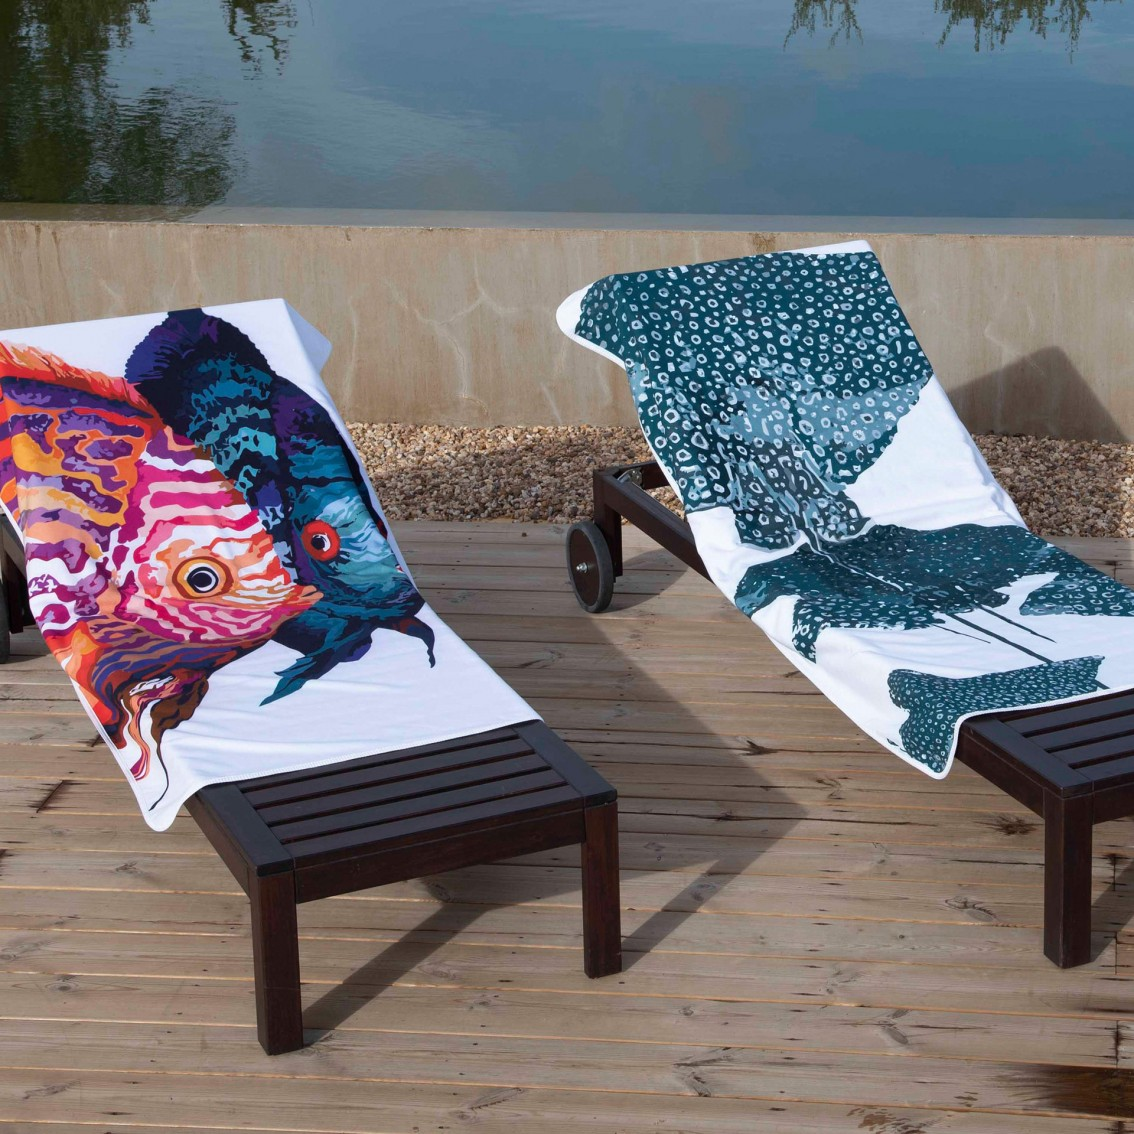 STING RAY BEACH TOWELS